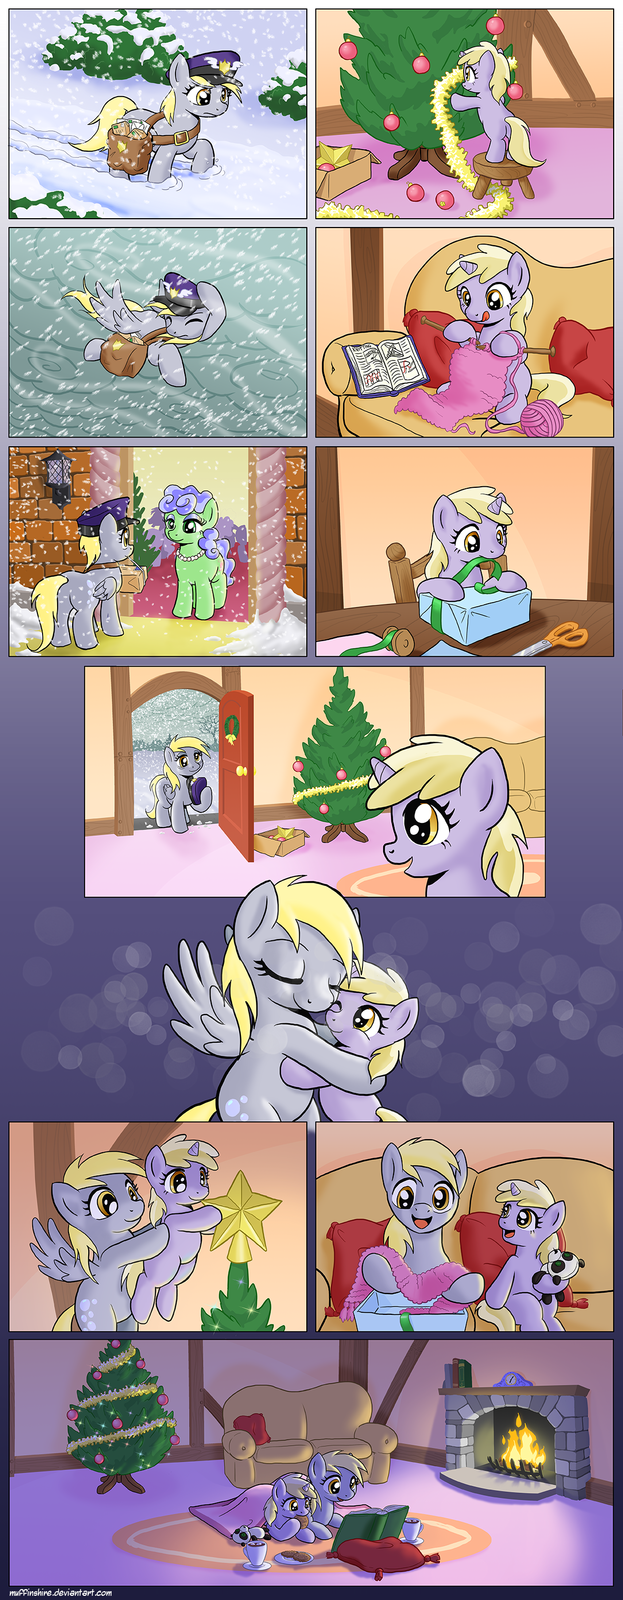 Hearth's Warming Together